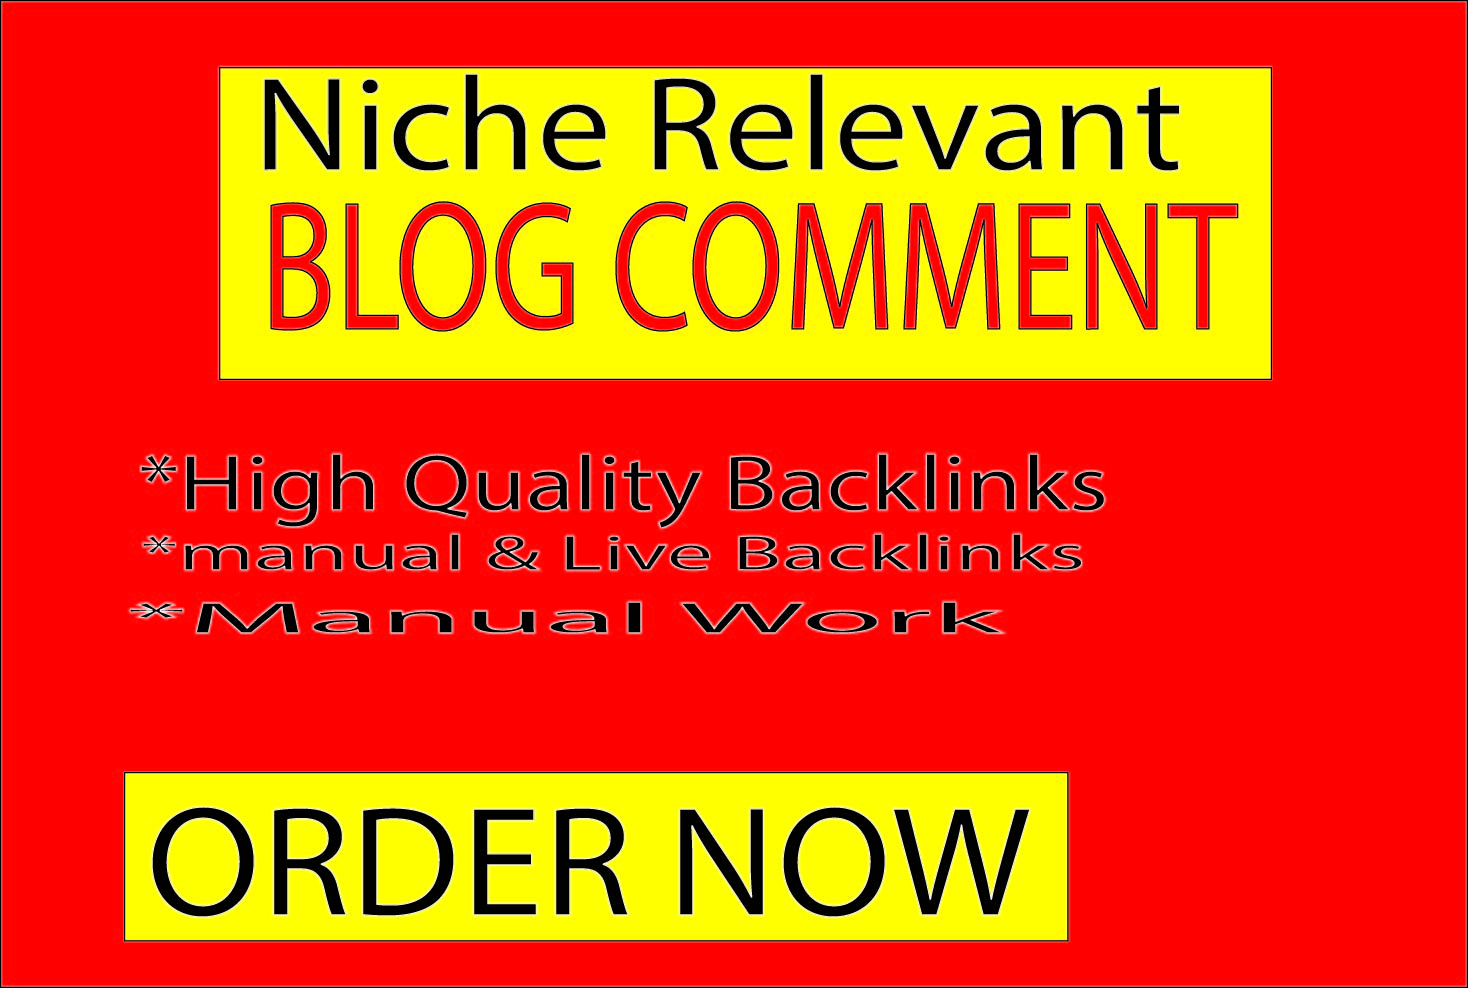 I Will Create 30 Niche Relevant Blog Comments Backlinks On High-Quality Sites.